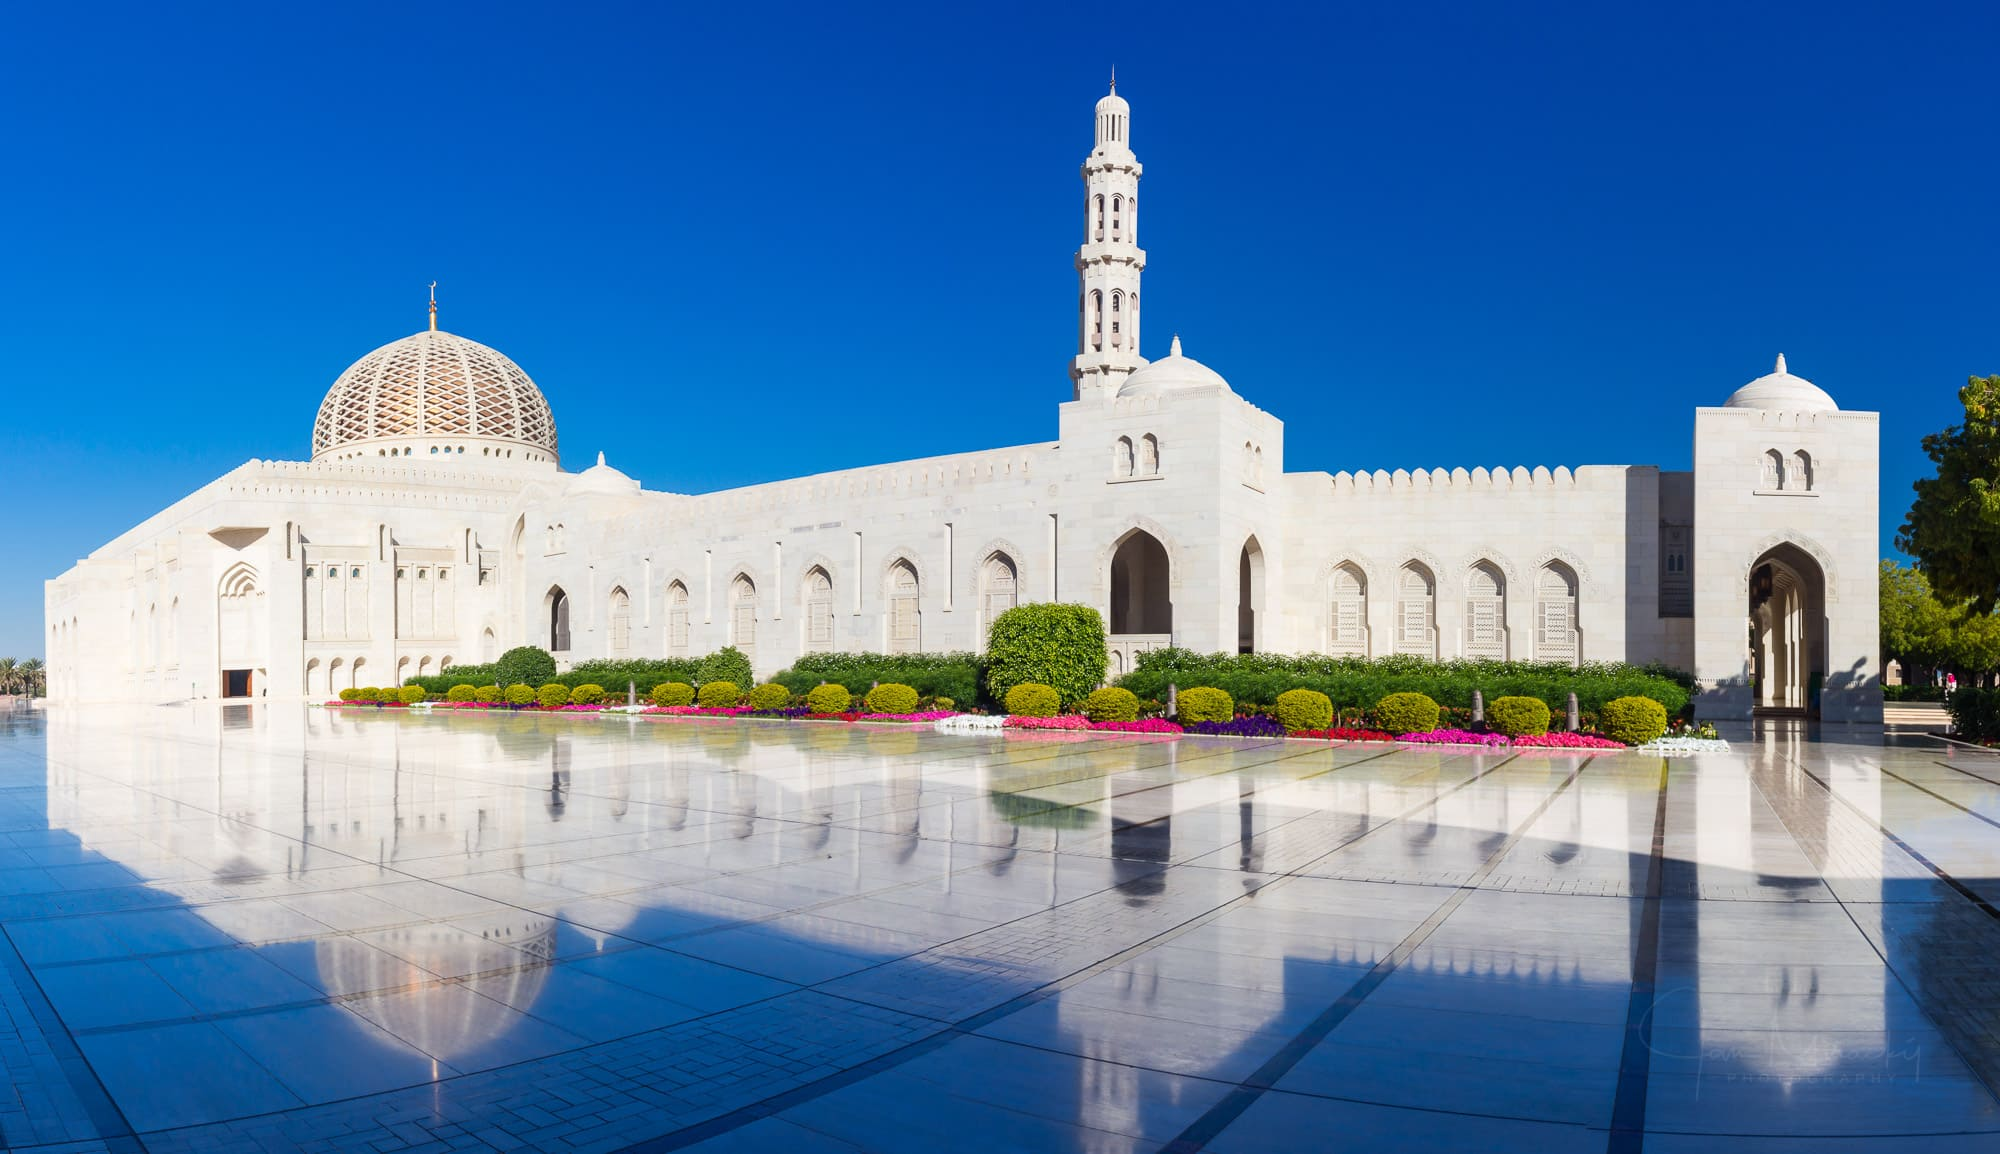 Qaboos Mosque in Muscat